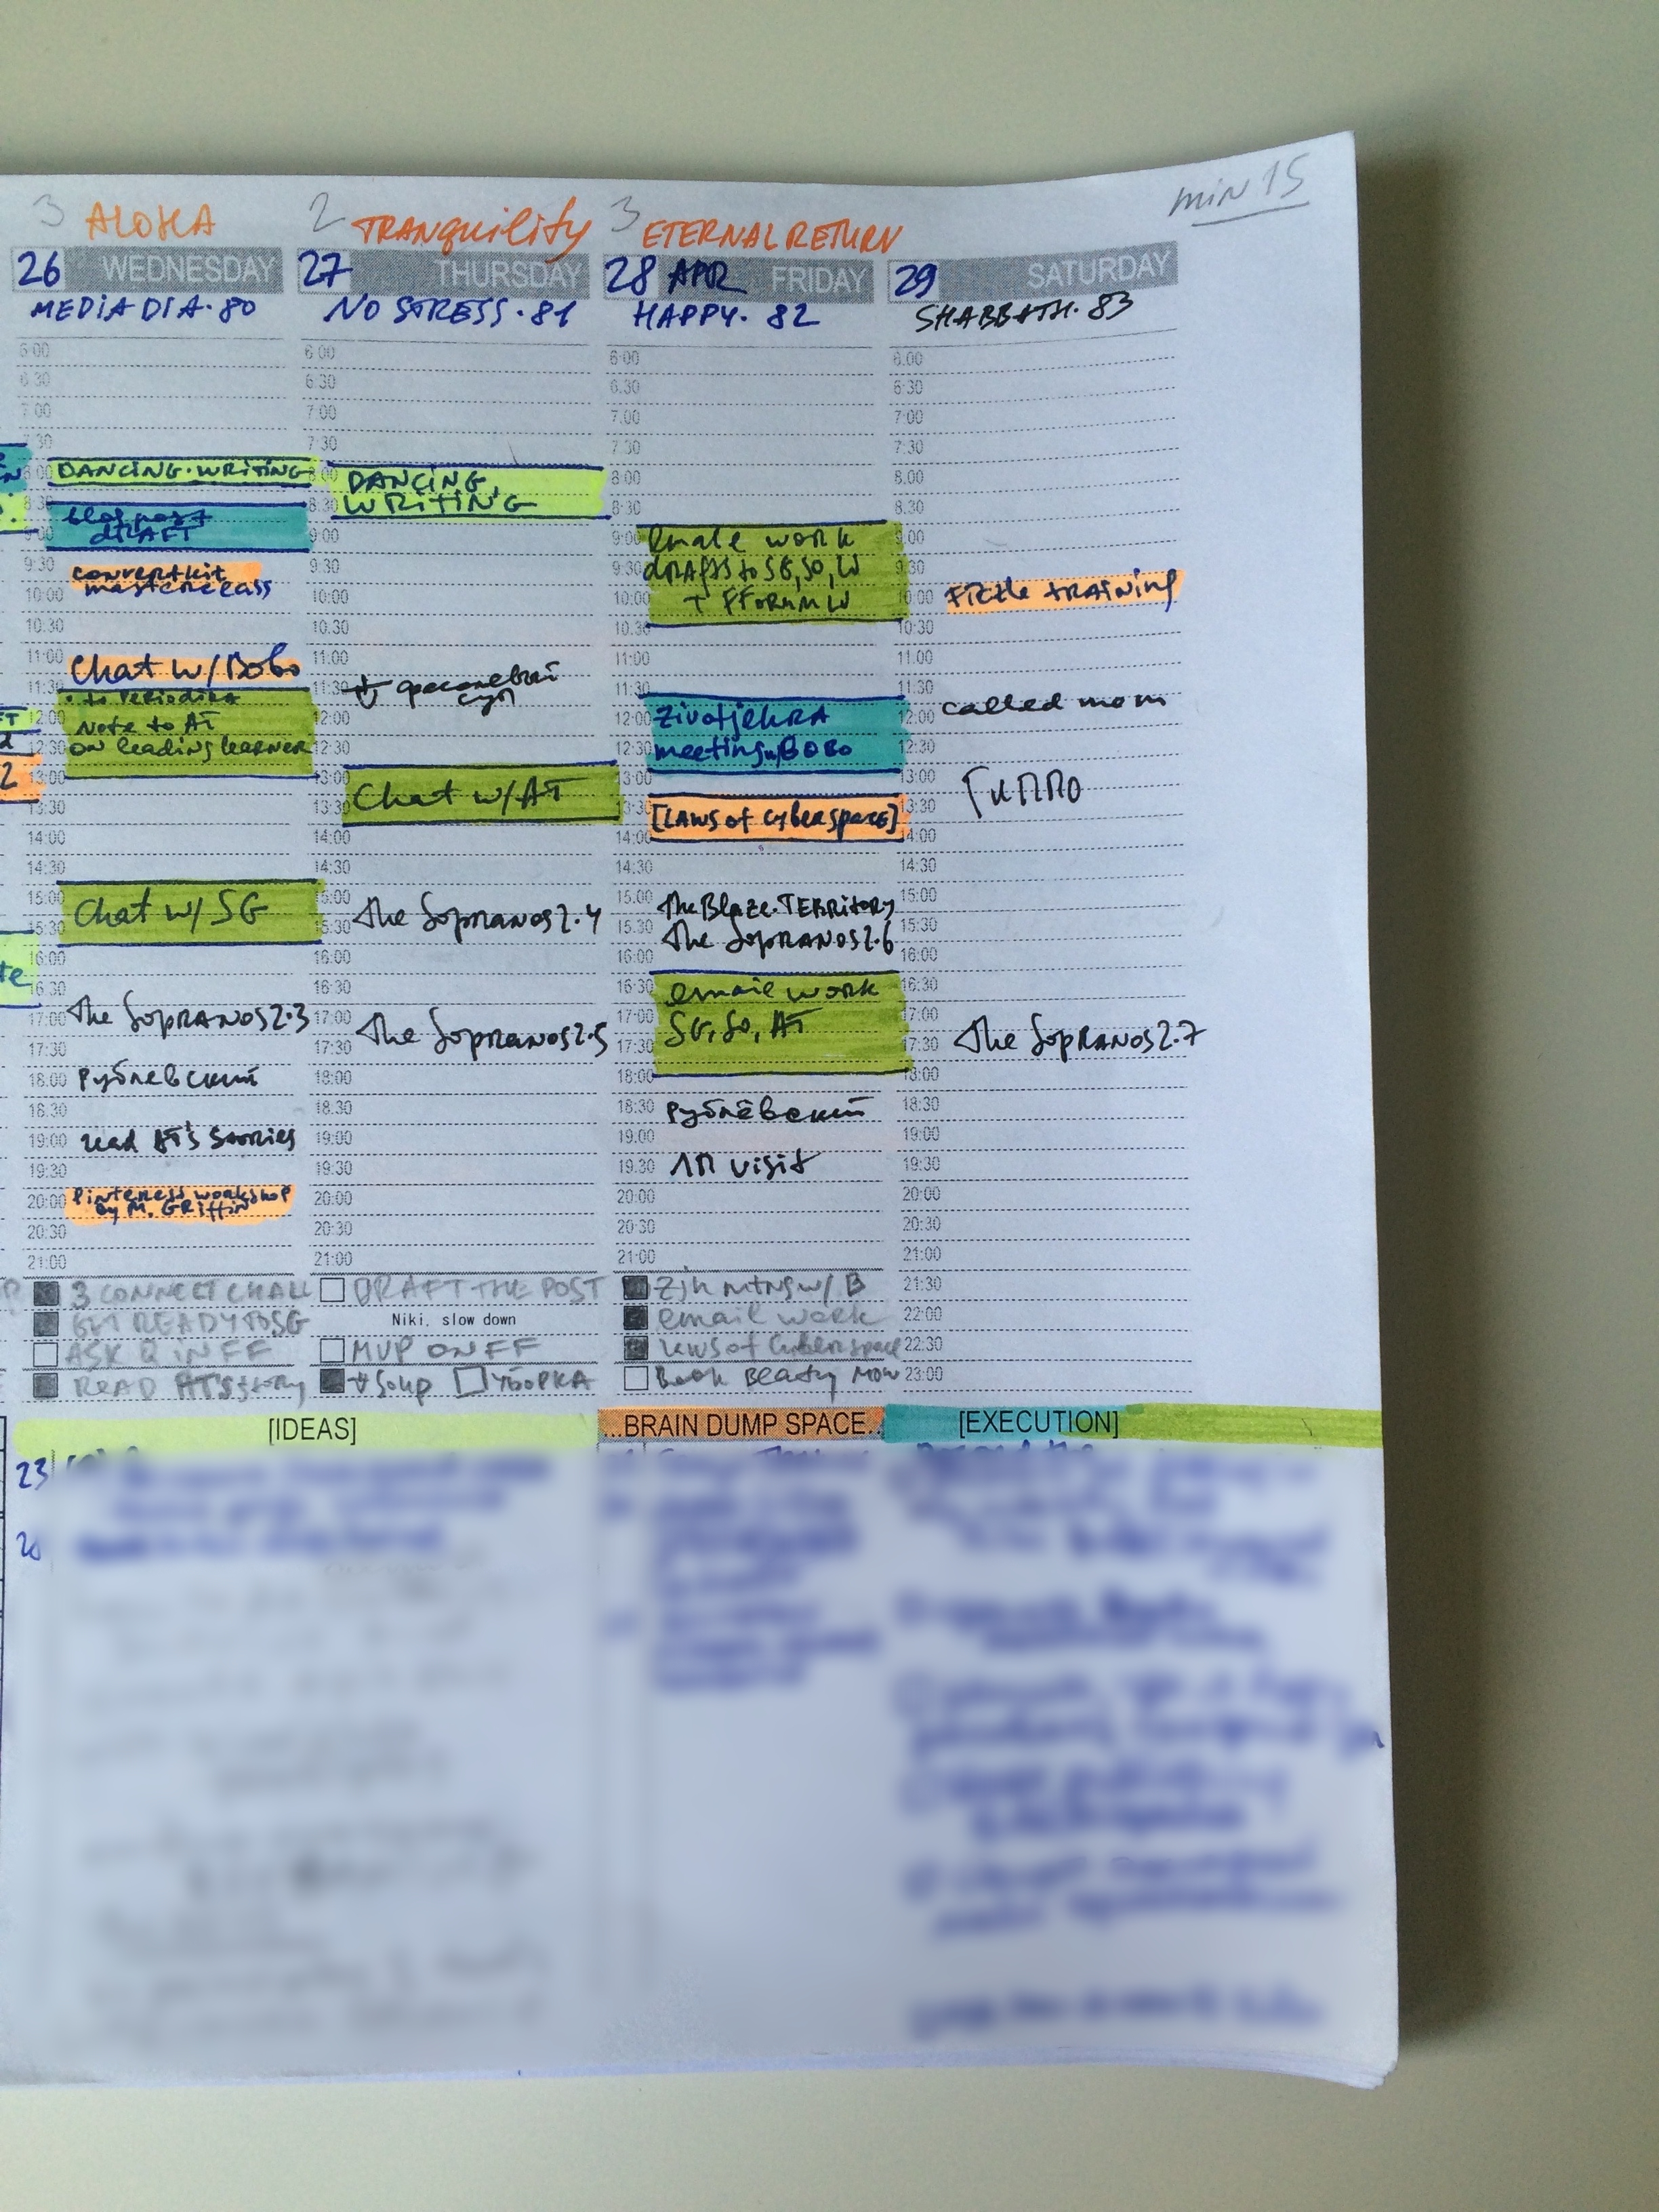 Weekly Logbook - I track work & life activities daily in the paper weekly logbook. More about this in the next article.